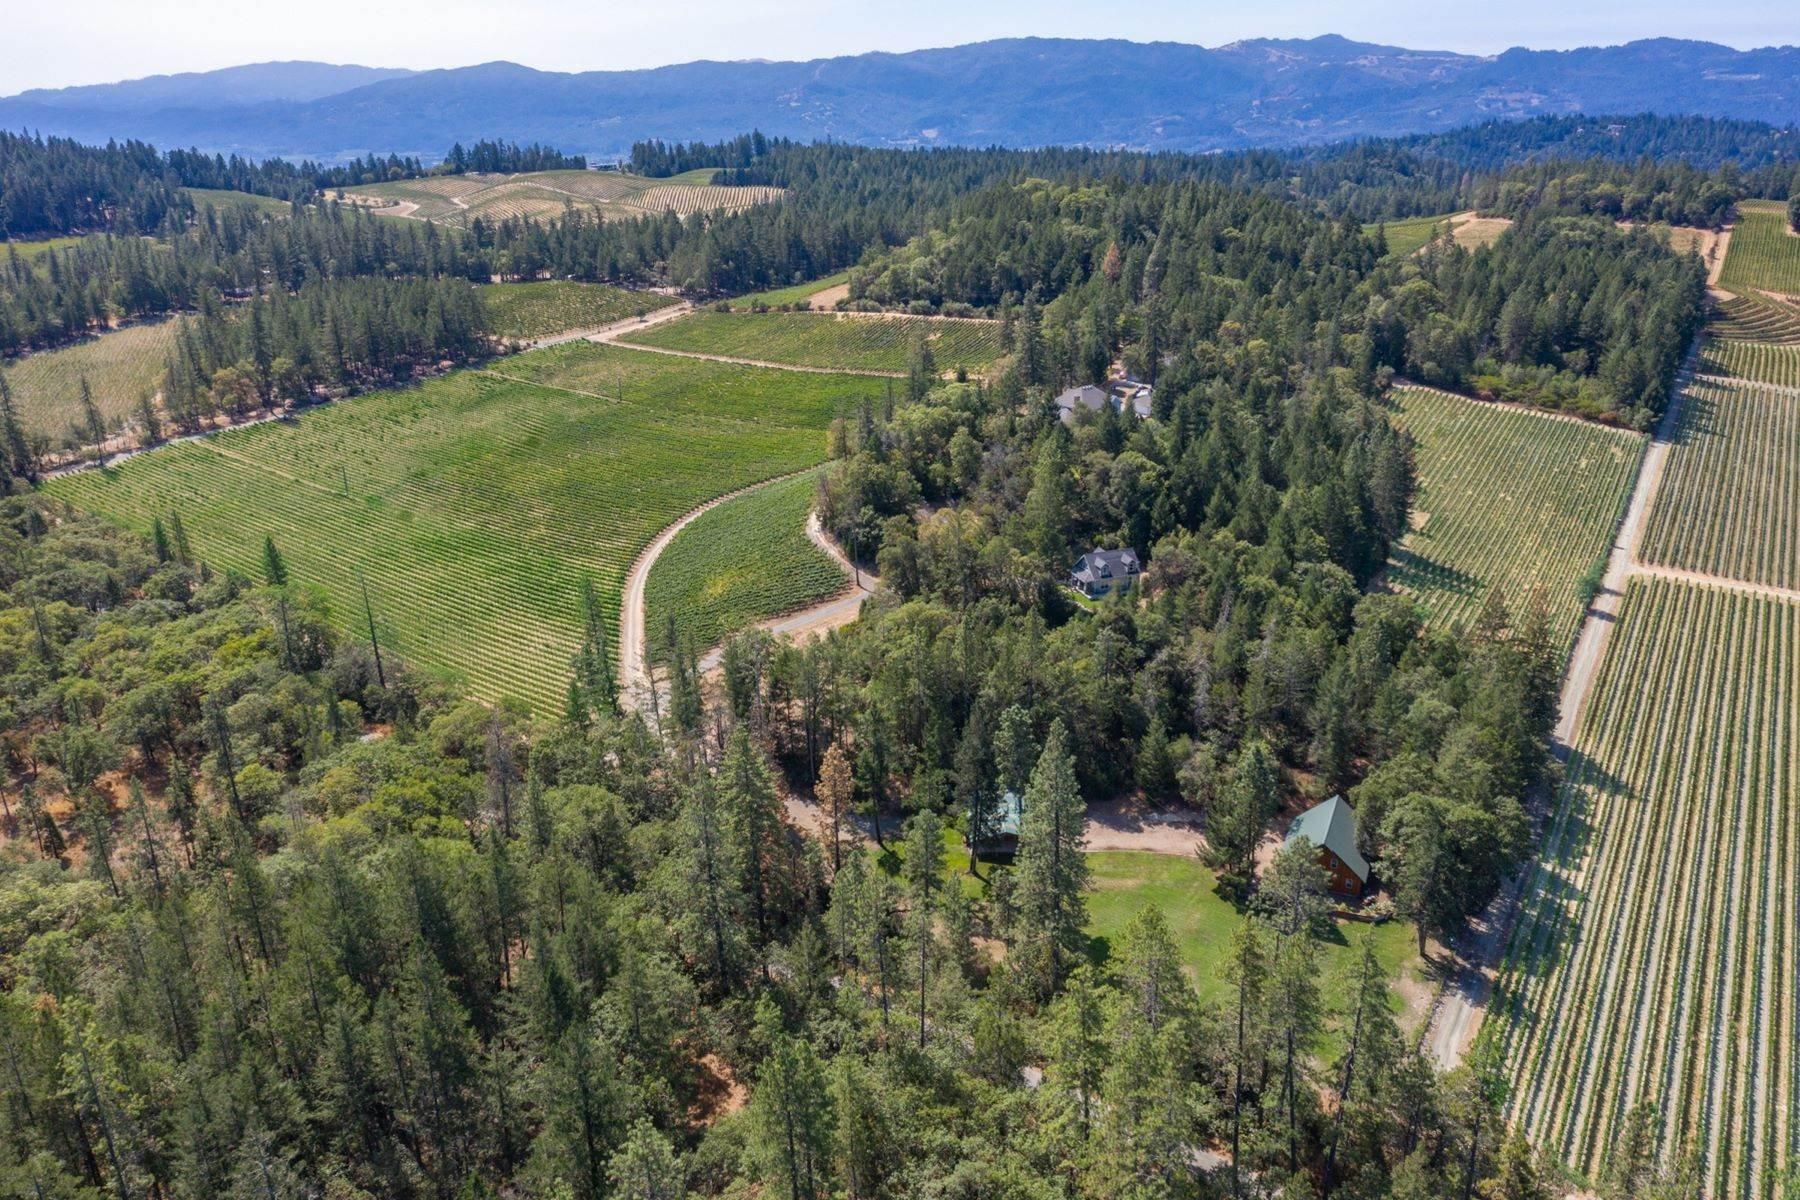 Single Family Homes for Sale at Premium Howell Mountain Cabernet Vineyard 700 Las Posadas Road Angwin, California 94508 United States